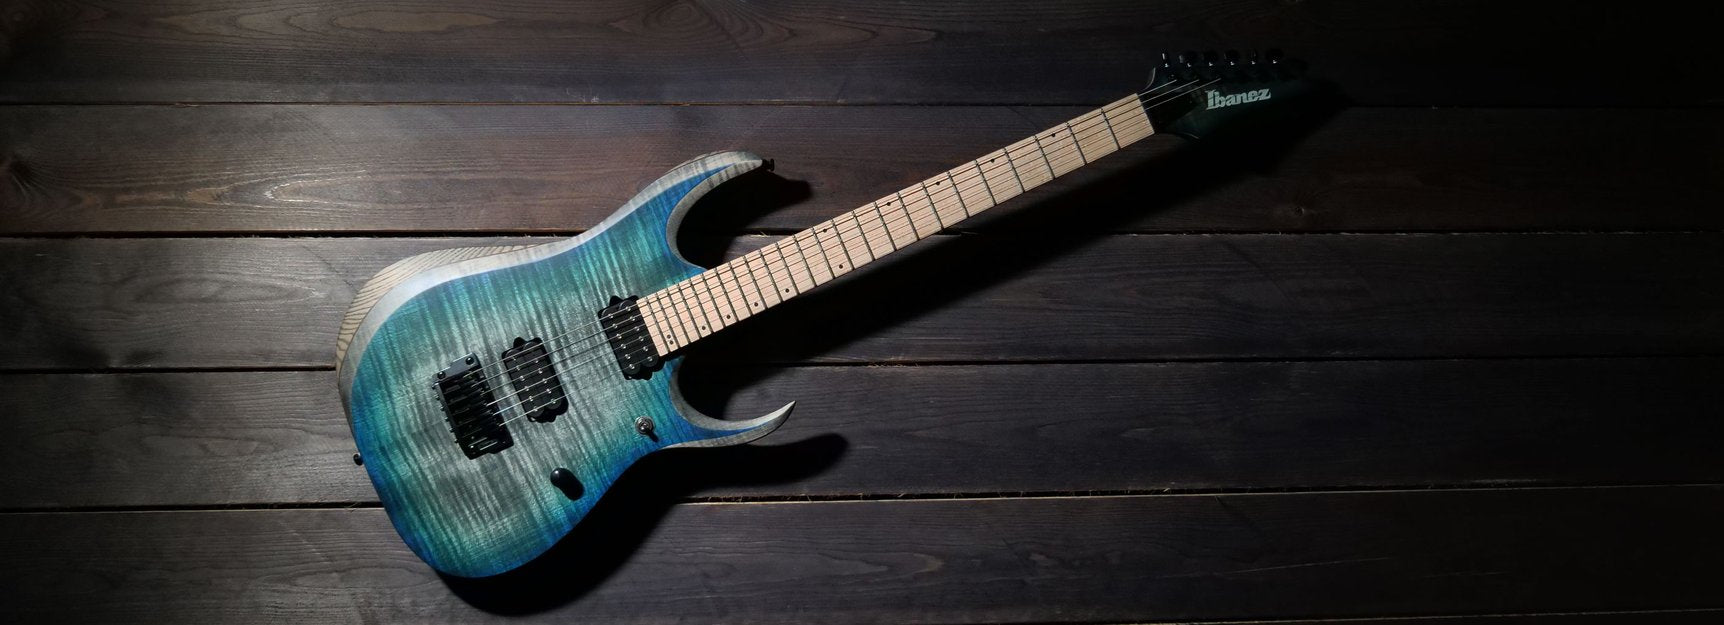 2017 Ibanez Guitars